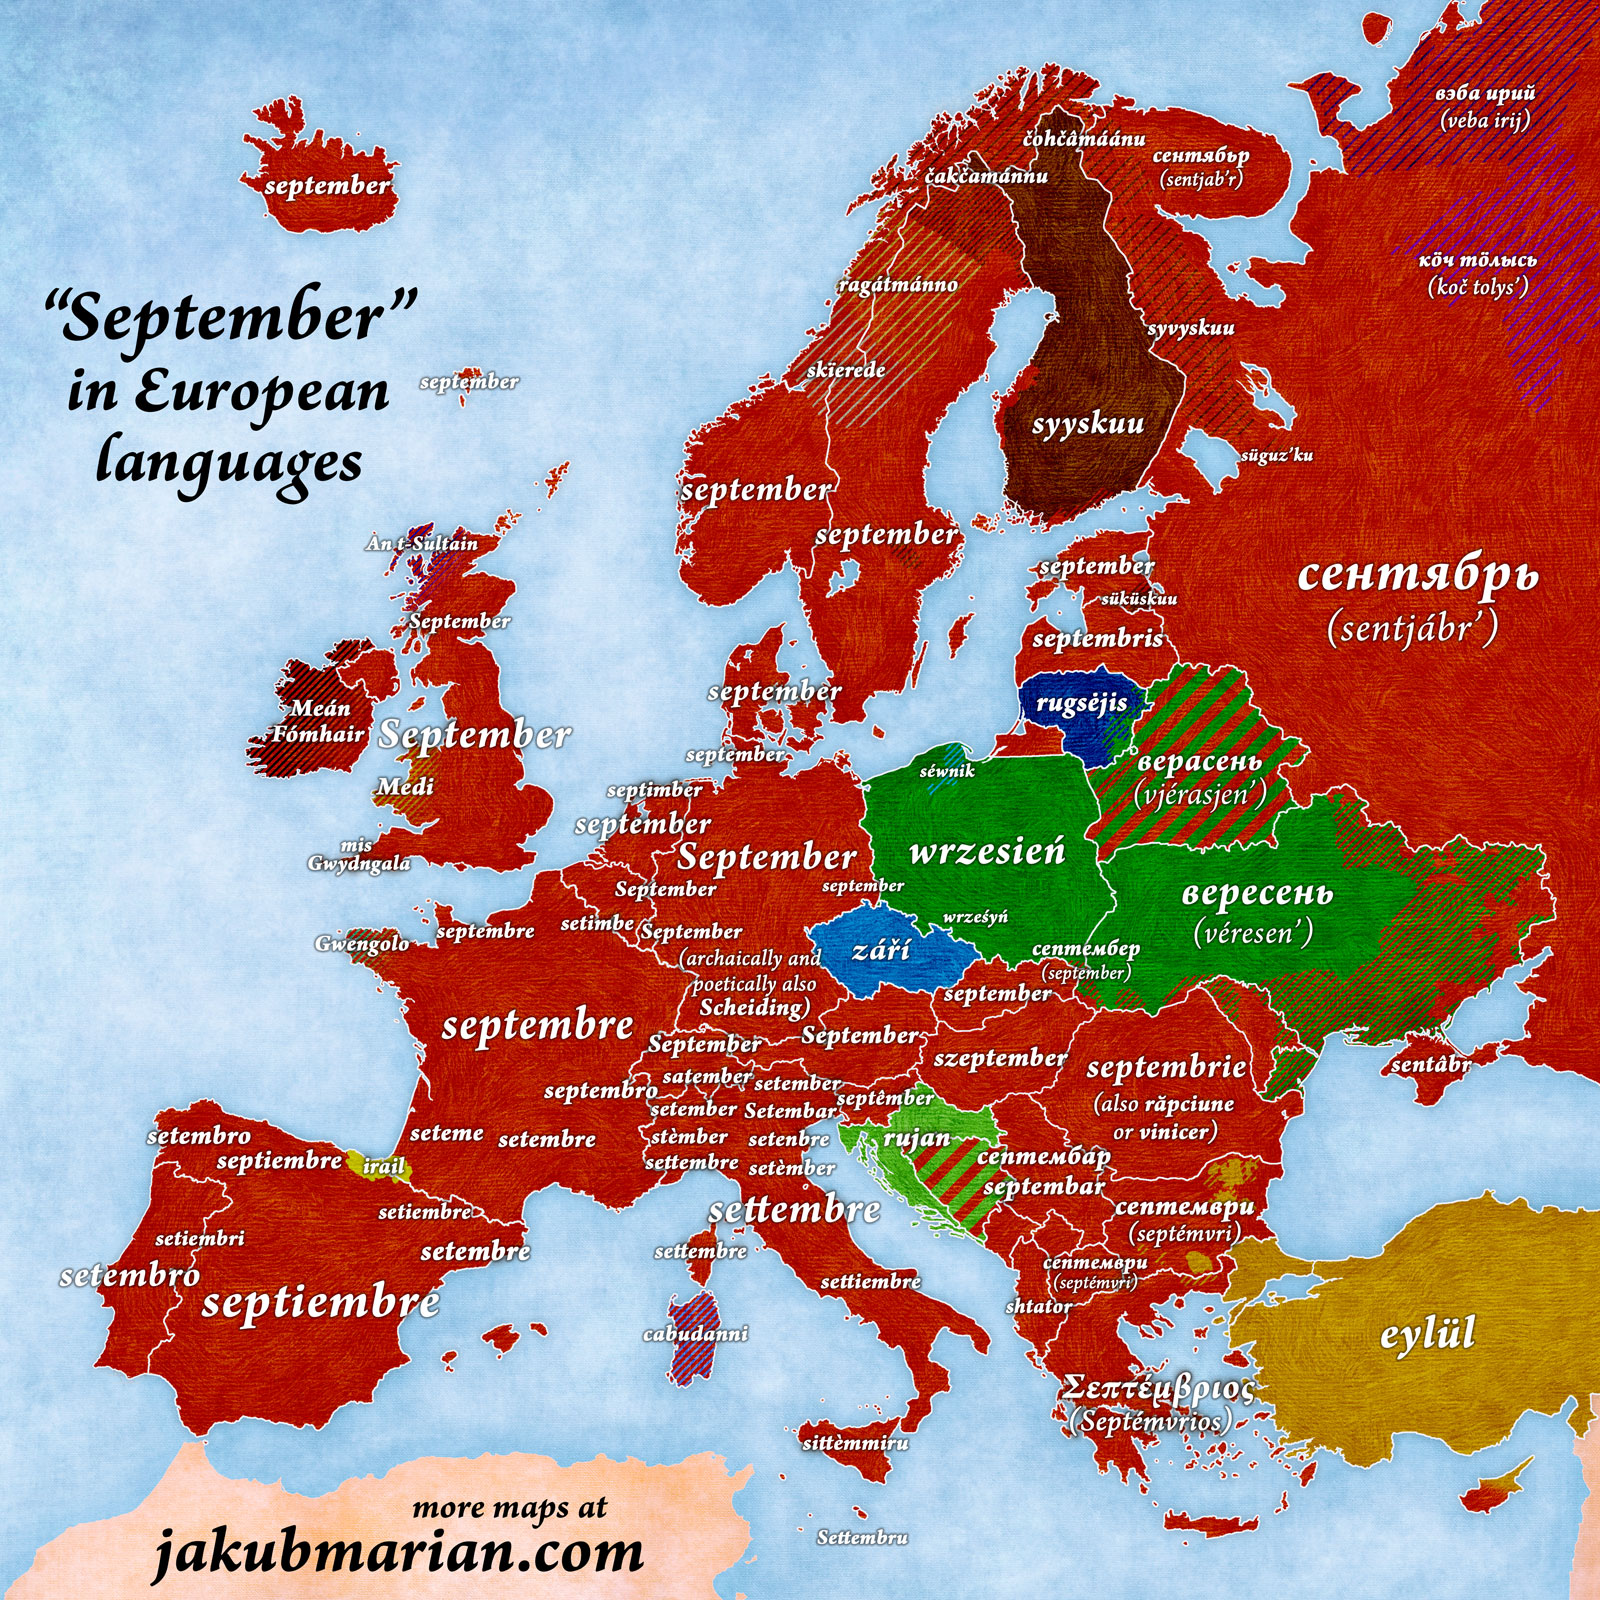 September in European languages